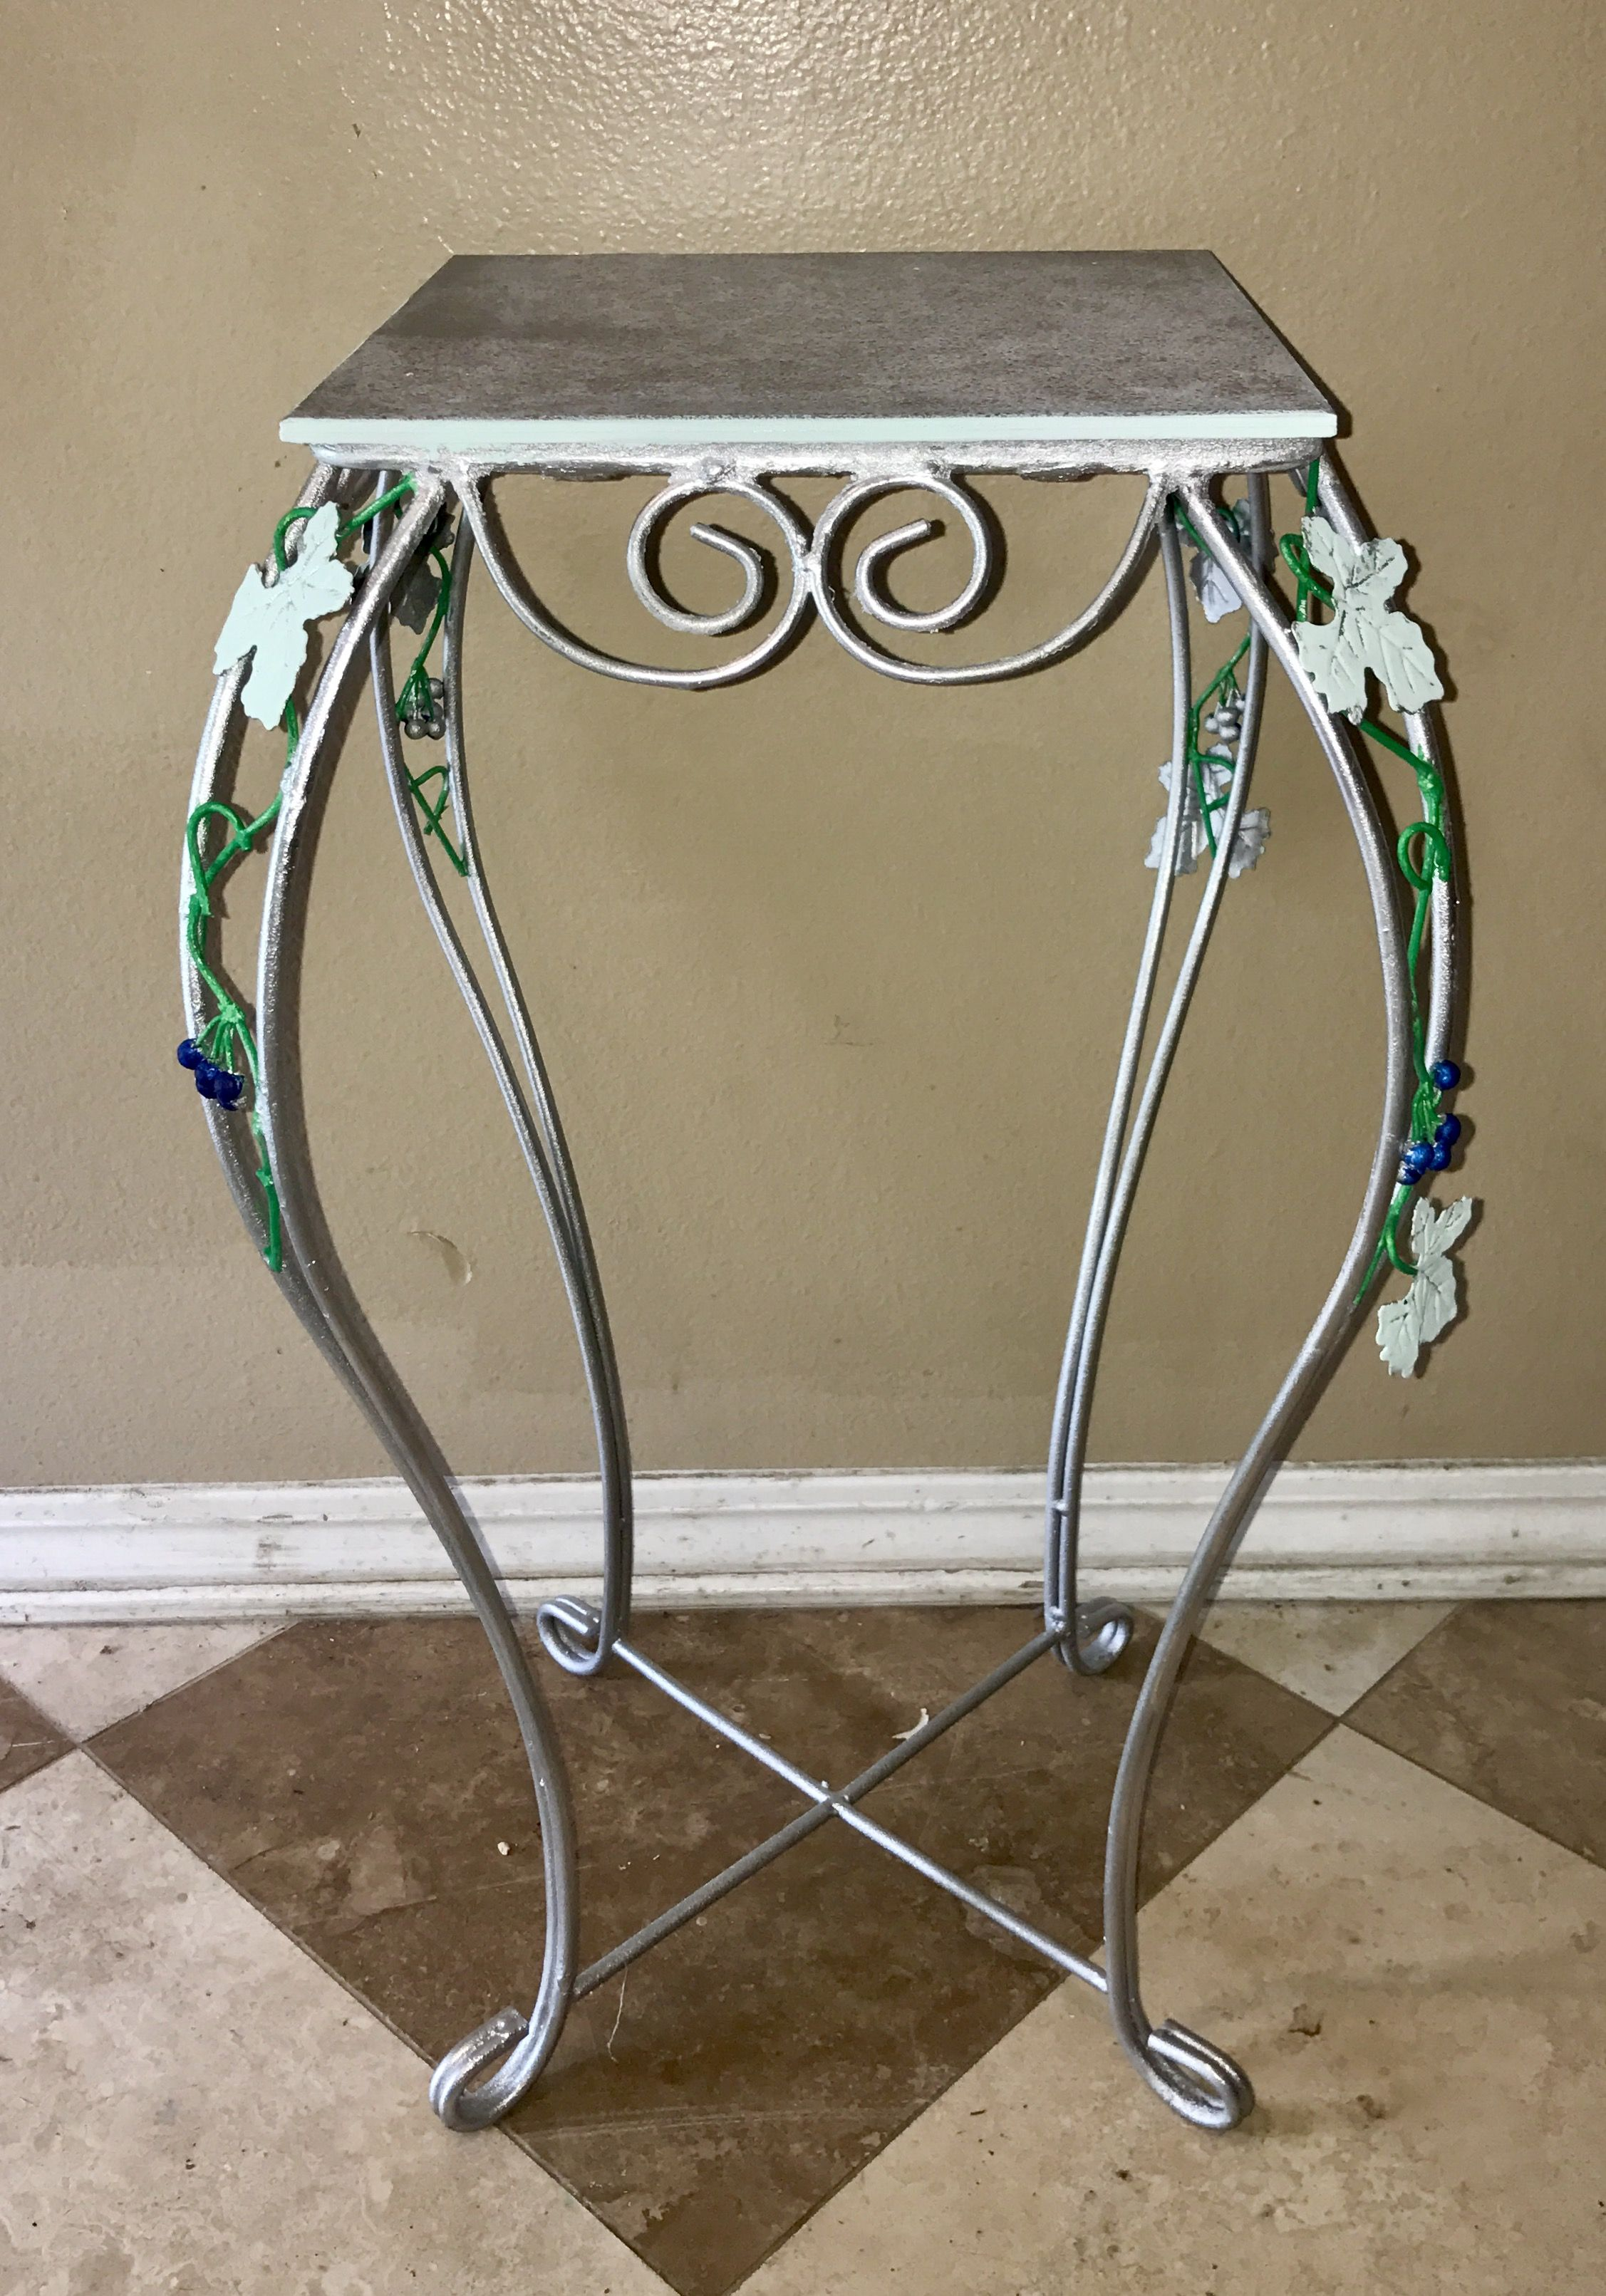 vintage tall metal silver accent table planter tile top leaf green vine design hampton bay patio ikea chairs contemporary round box shelves promotions hallway mirror cabinet